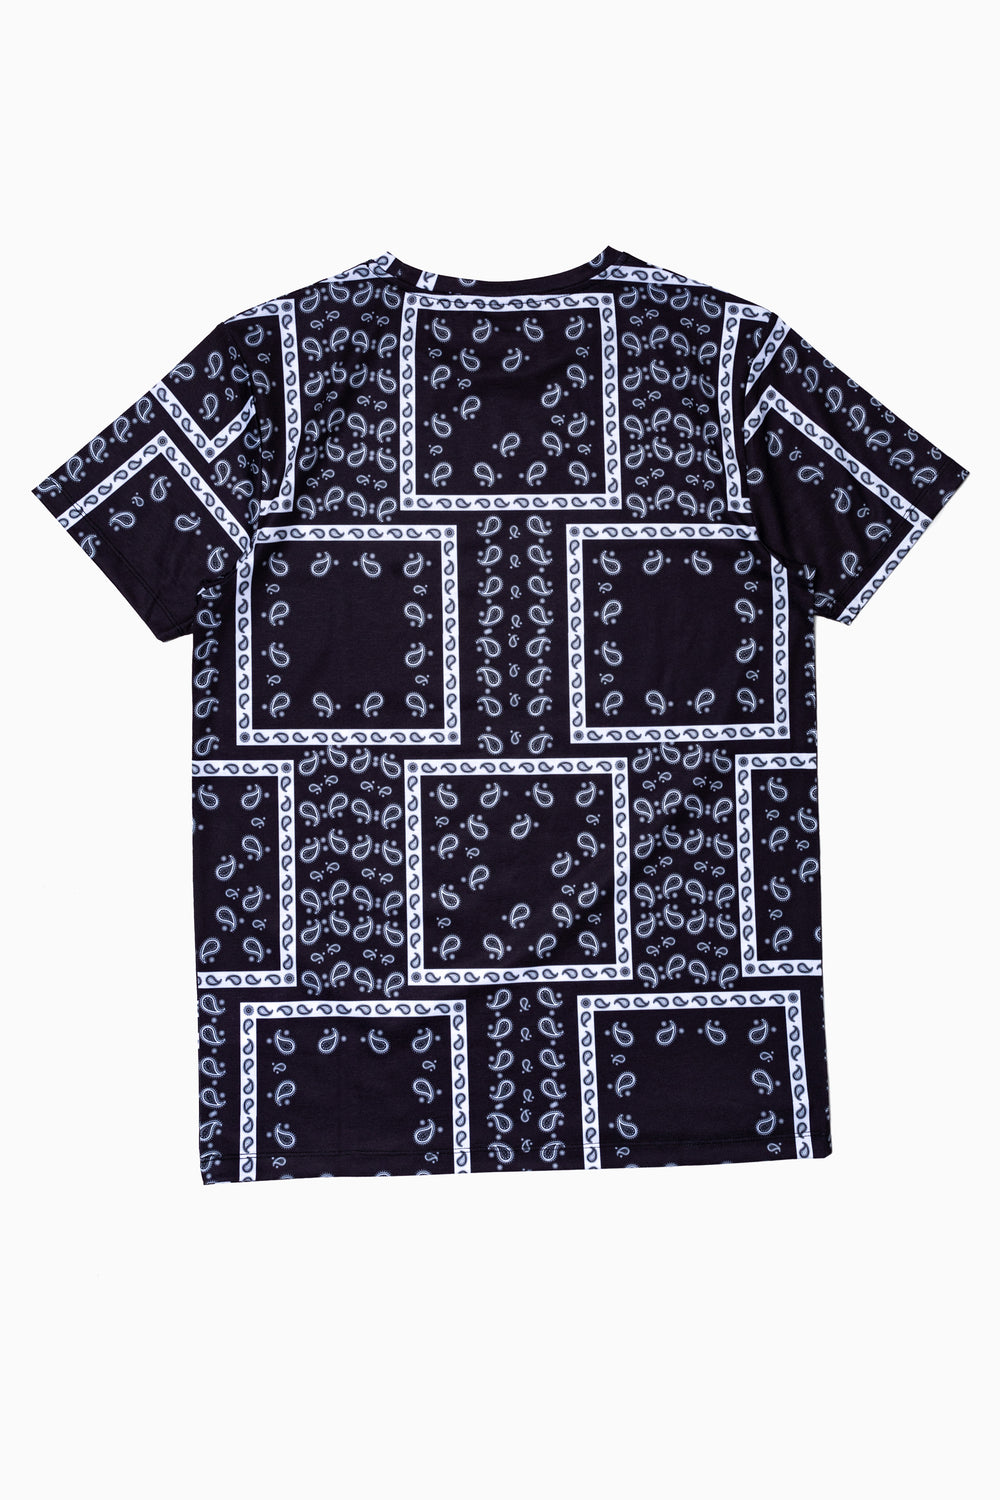 SOCIETY SPORT BLACK BANDANA MEN'S T-SHIRT